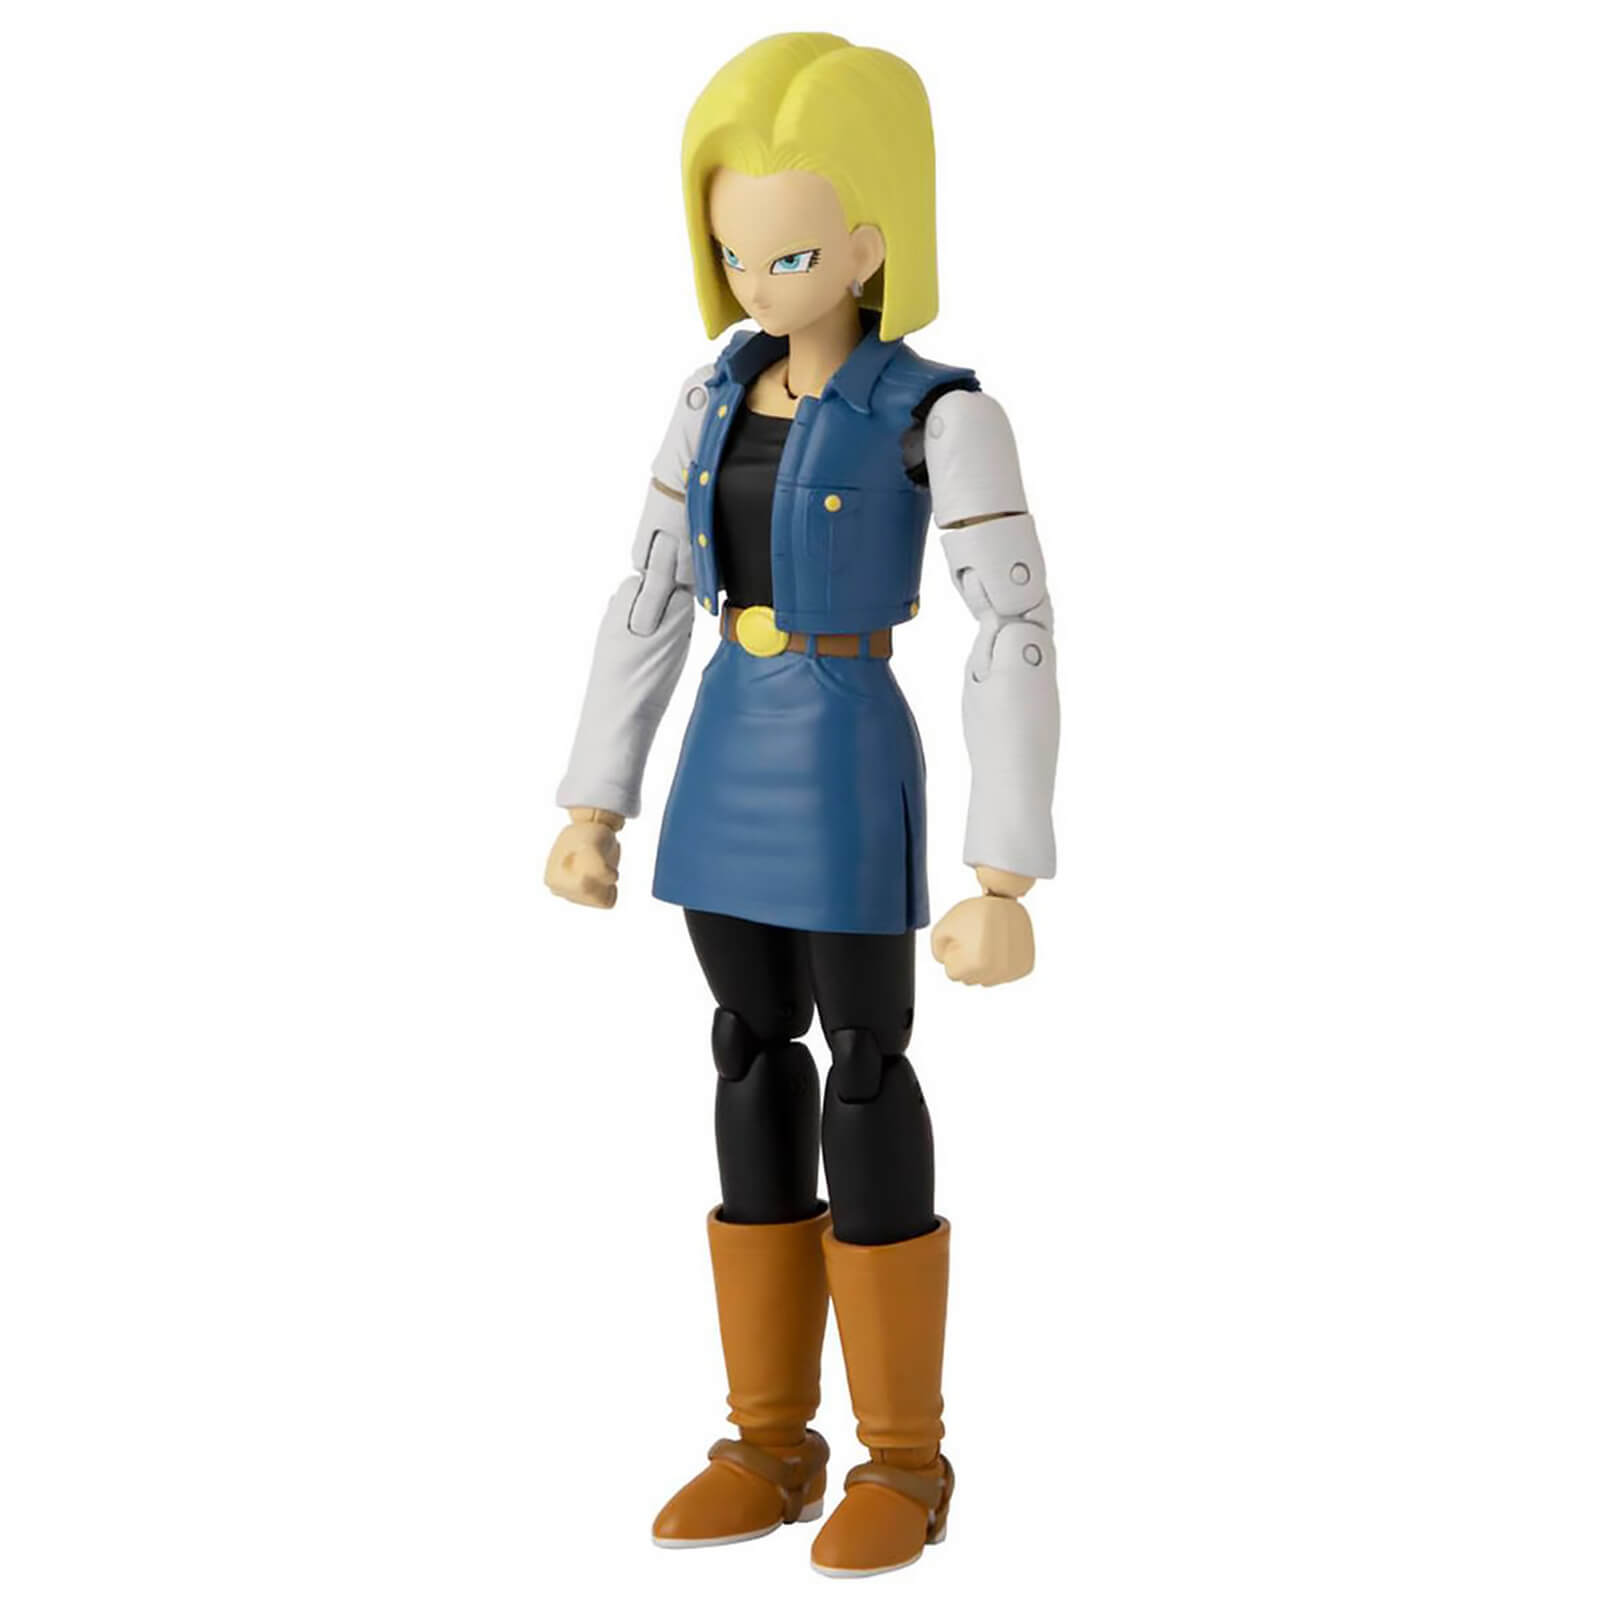 Image of Bandai Dragon Stars DBZ Android 18 Action Figure